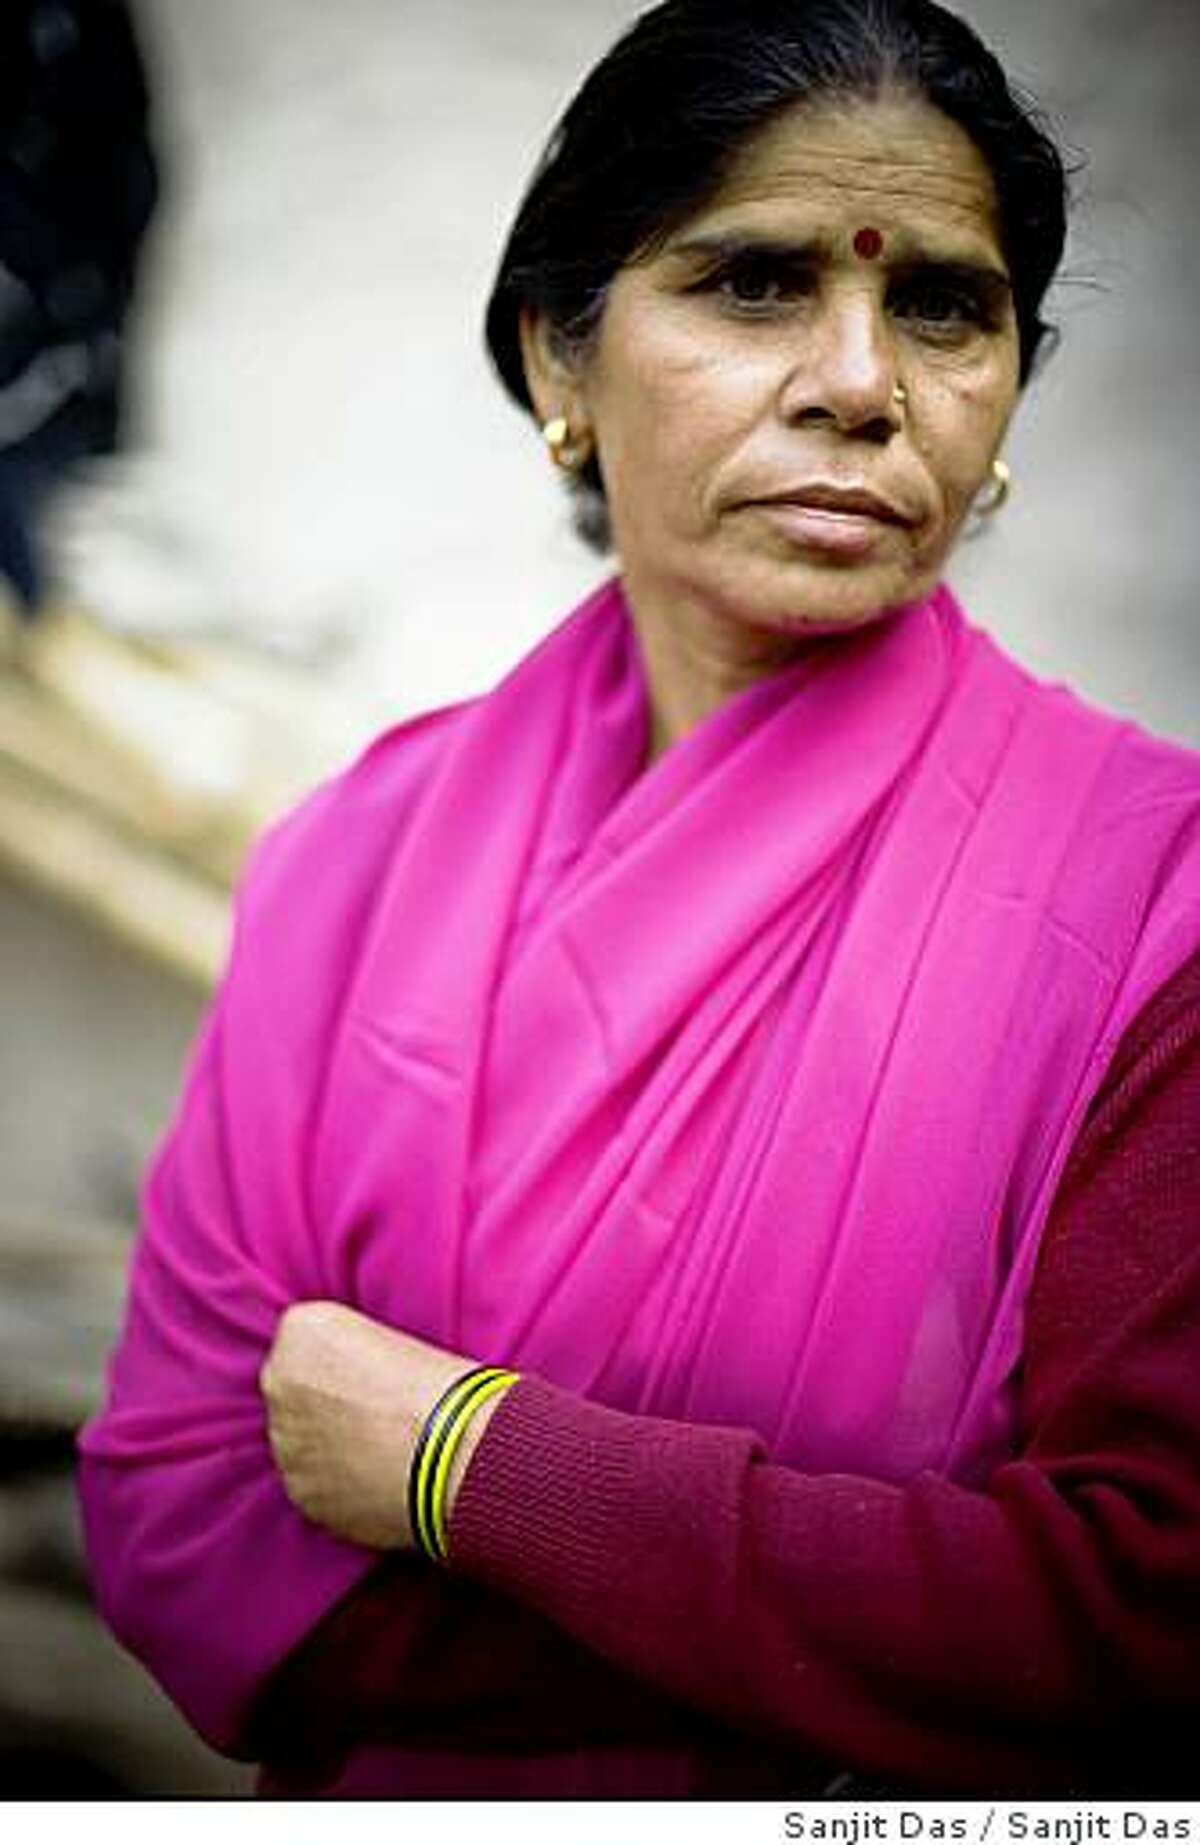 Sampath Pal Devi, 47 commander of the Pink Gang, poses for a photograph in Village of District Banda in Uttar Pradesh, India. This band of vigilantes, called the Gulabi Gang (pink gang) its several thousand swomen members wear only pink saris is taking up bamboo batons against domestic violence and corruption.The region is one of the poorest parts of India's northern and most populous states, Uttar Pradesh . The 47-year-old leader of the Pink Gang, Sampat Pal Devi is a fiesty woman. The barely educated, impoverished mother of five, has emerged as a messianic figure in the region.